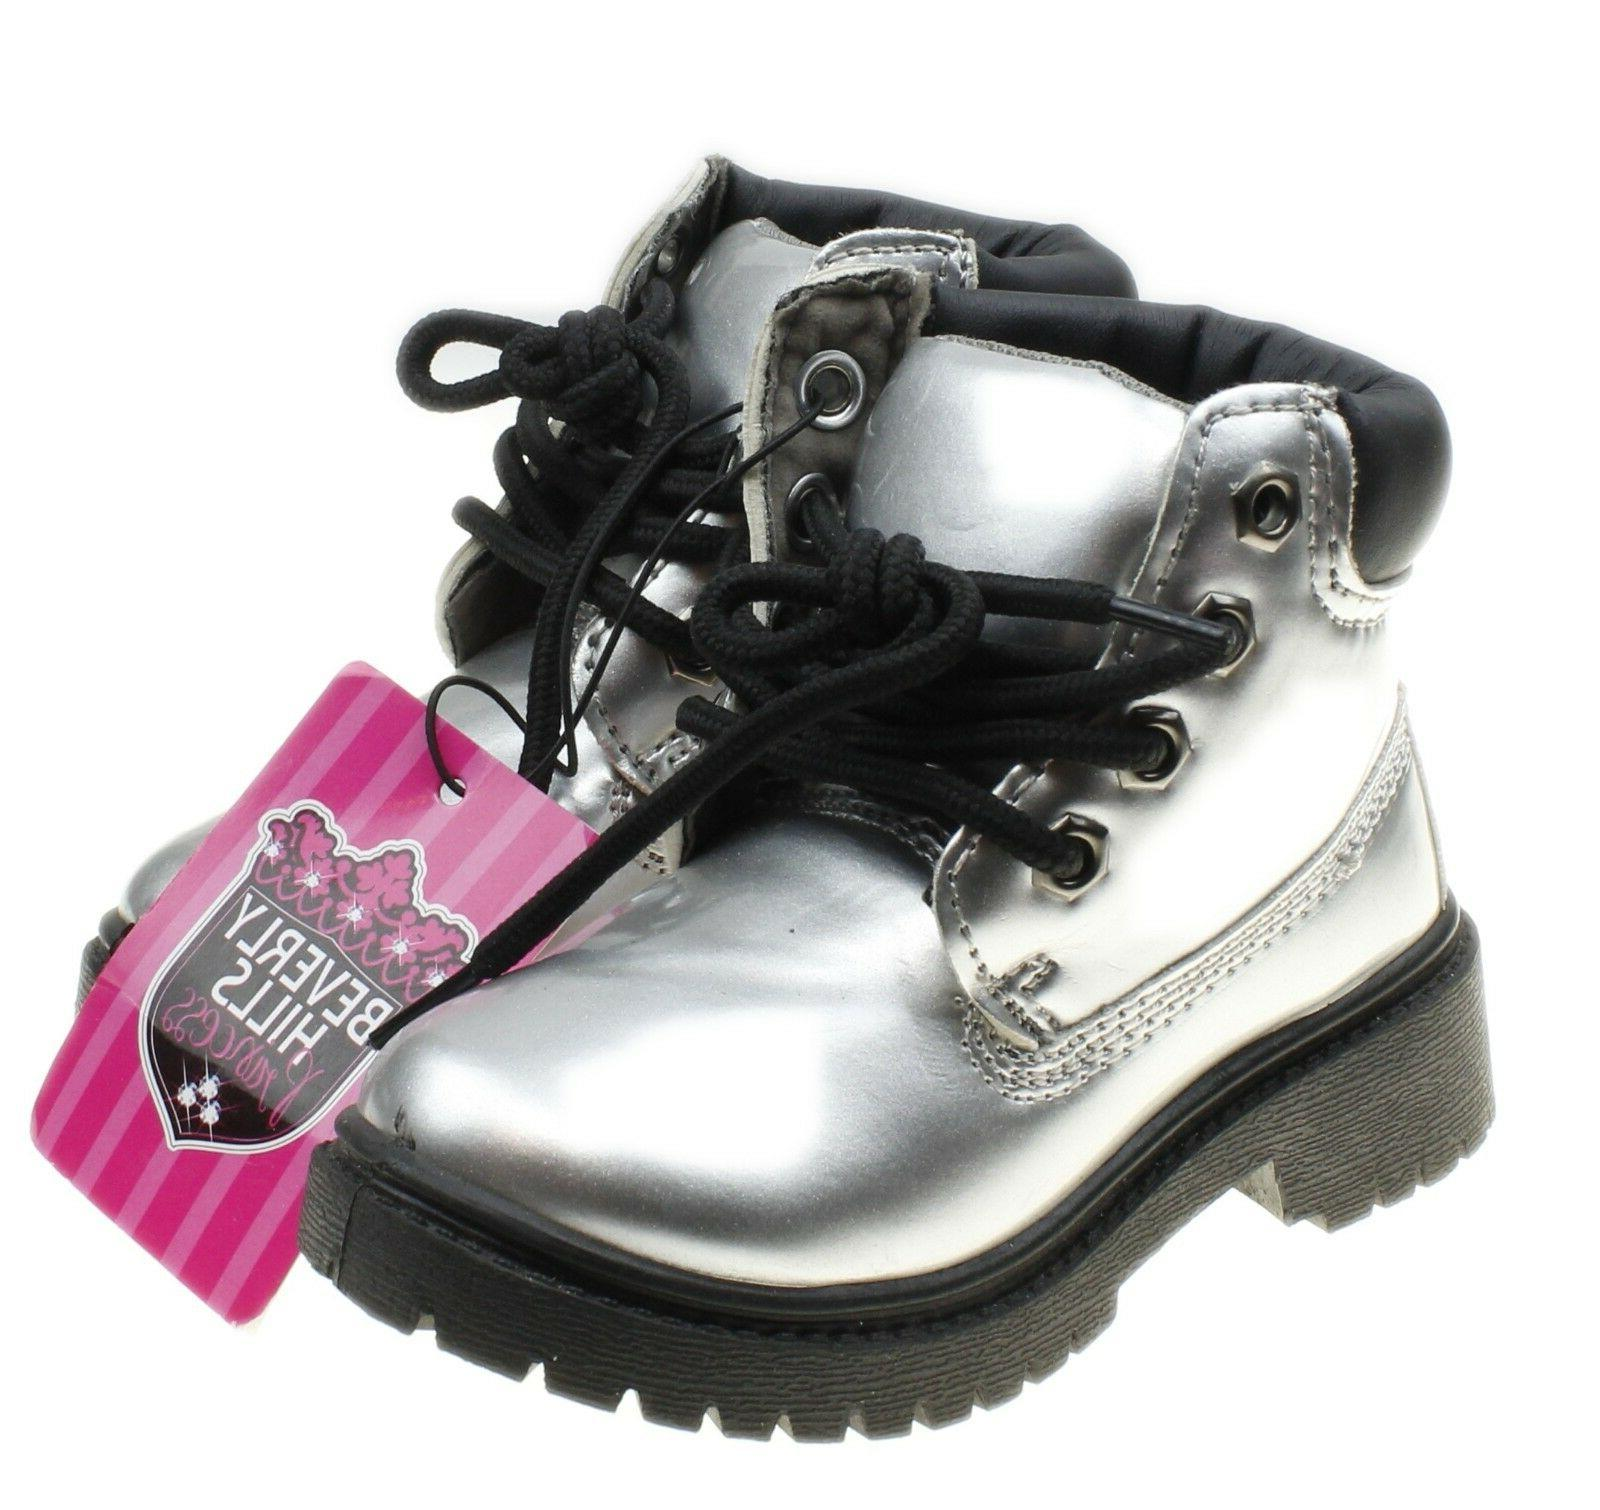 size 6 girls or boys silver combat